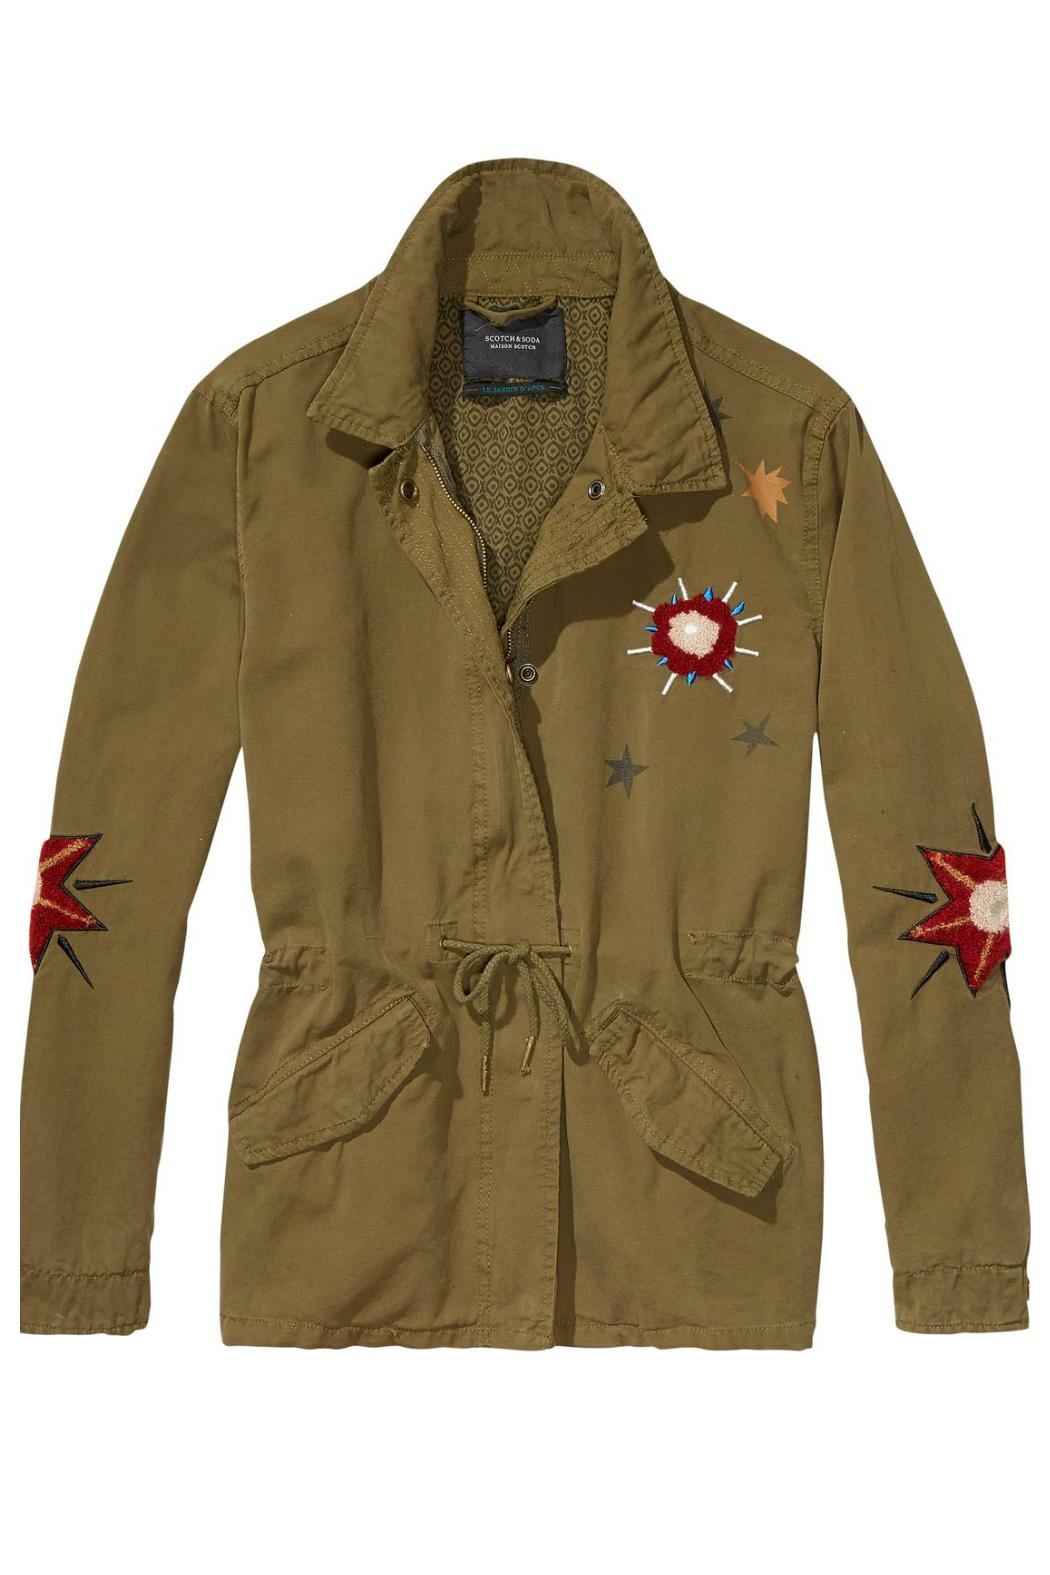 Scotch and soda embroidered military jacket from canada by